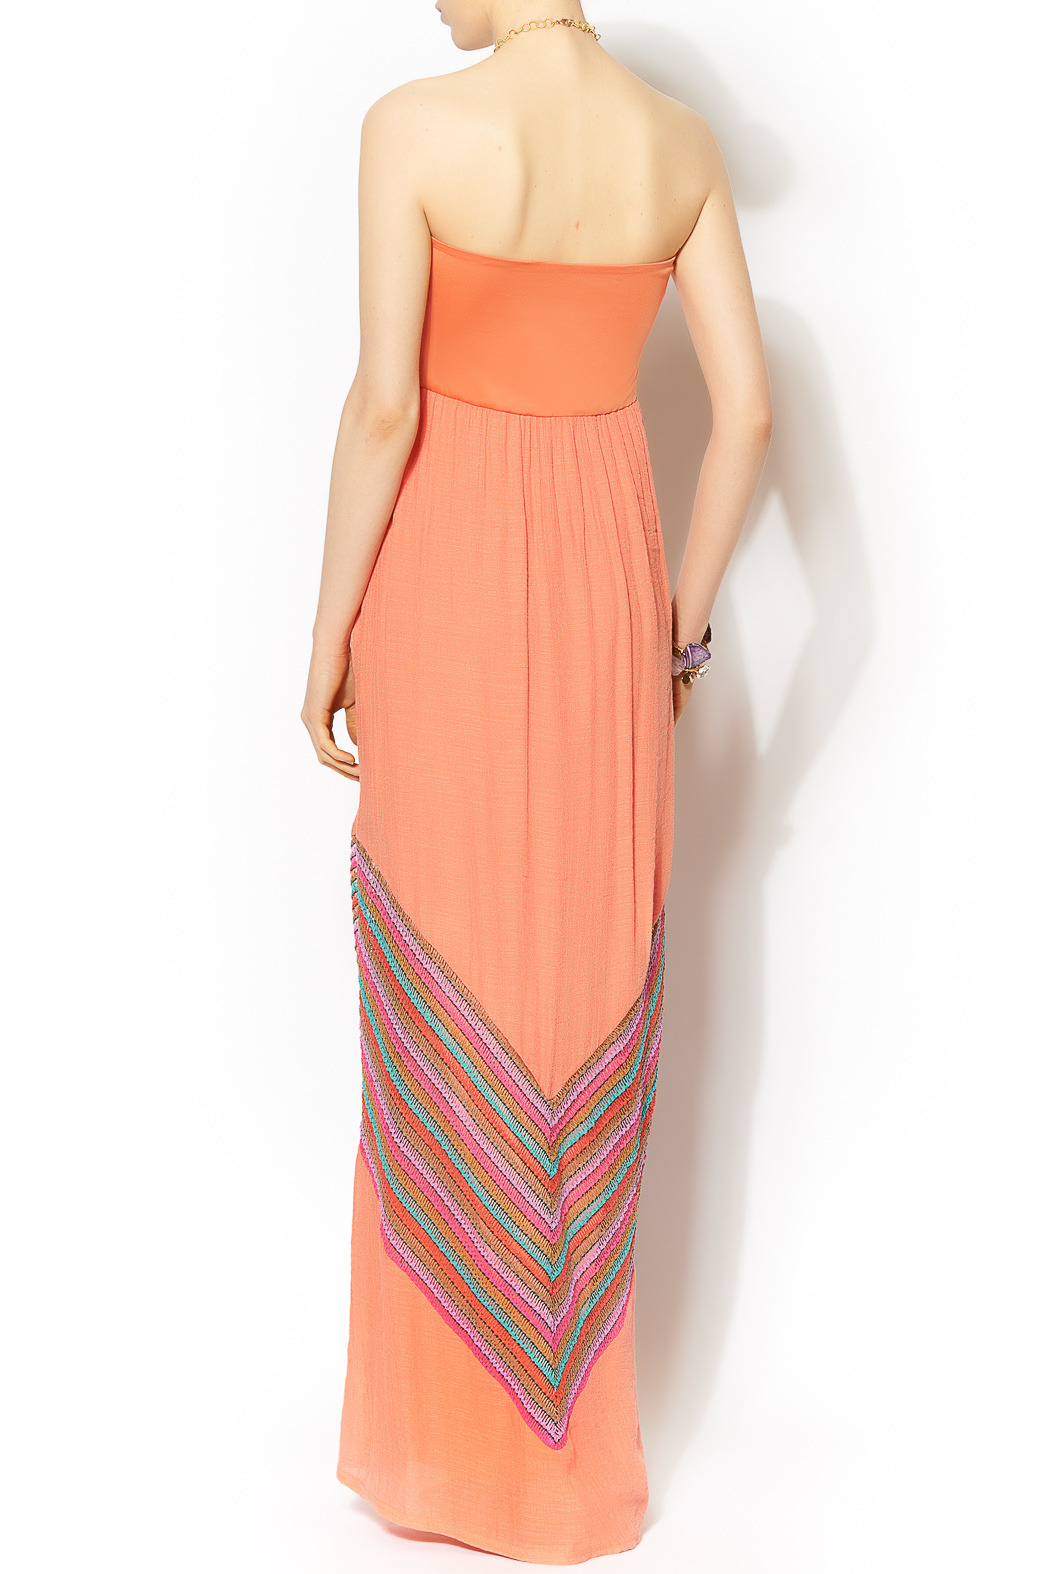 Missy Robertson Coral Chevron Detail Maxi - Front Full Image